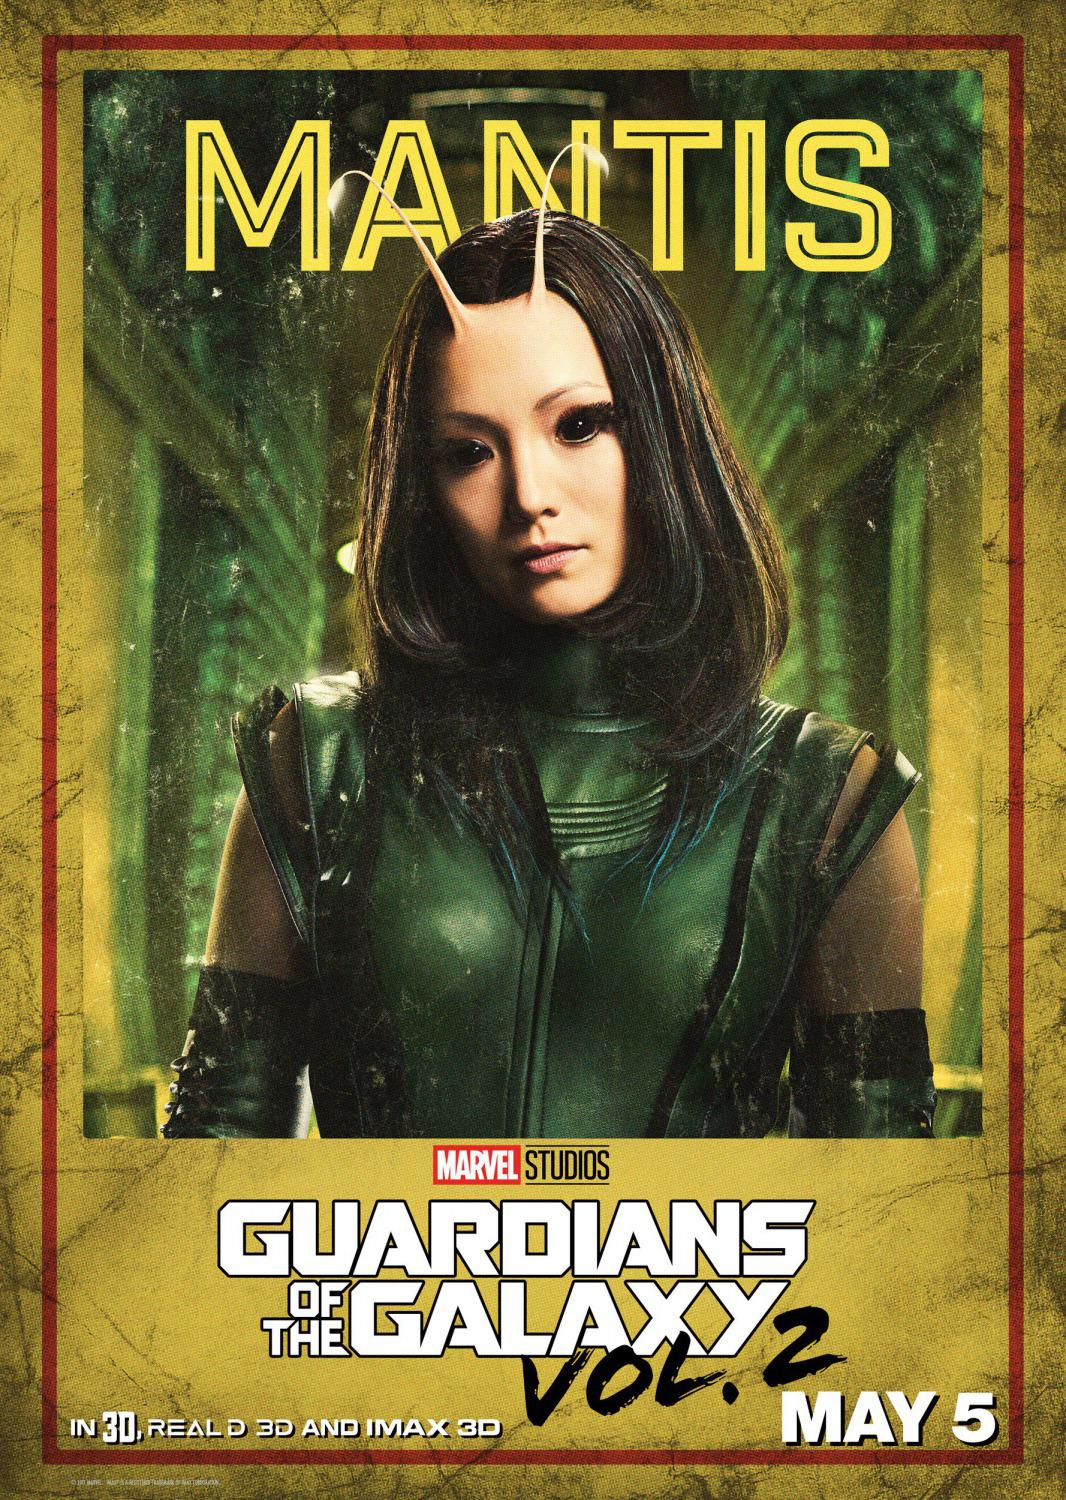 Guardians of the Galaxy vol two - Guardiani della Galassia 2 - Mantis